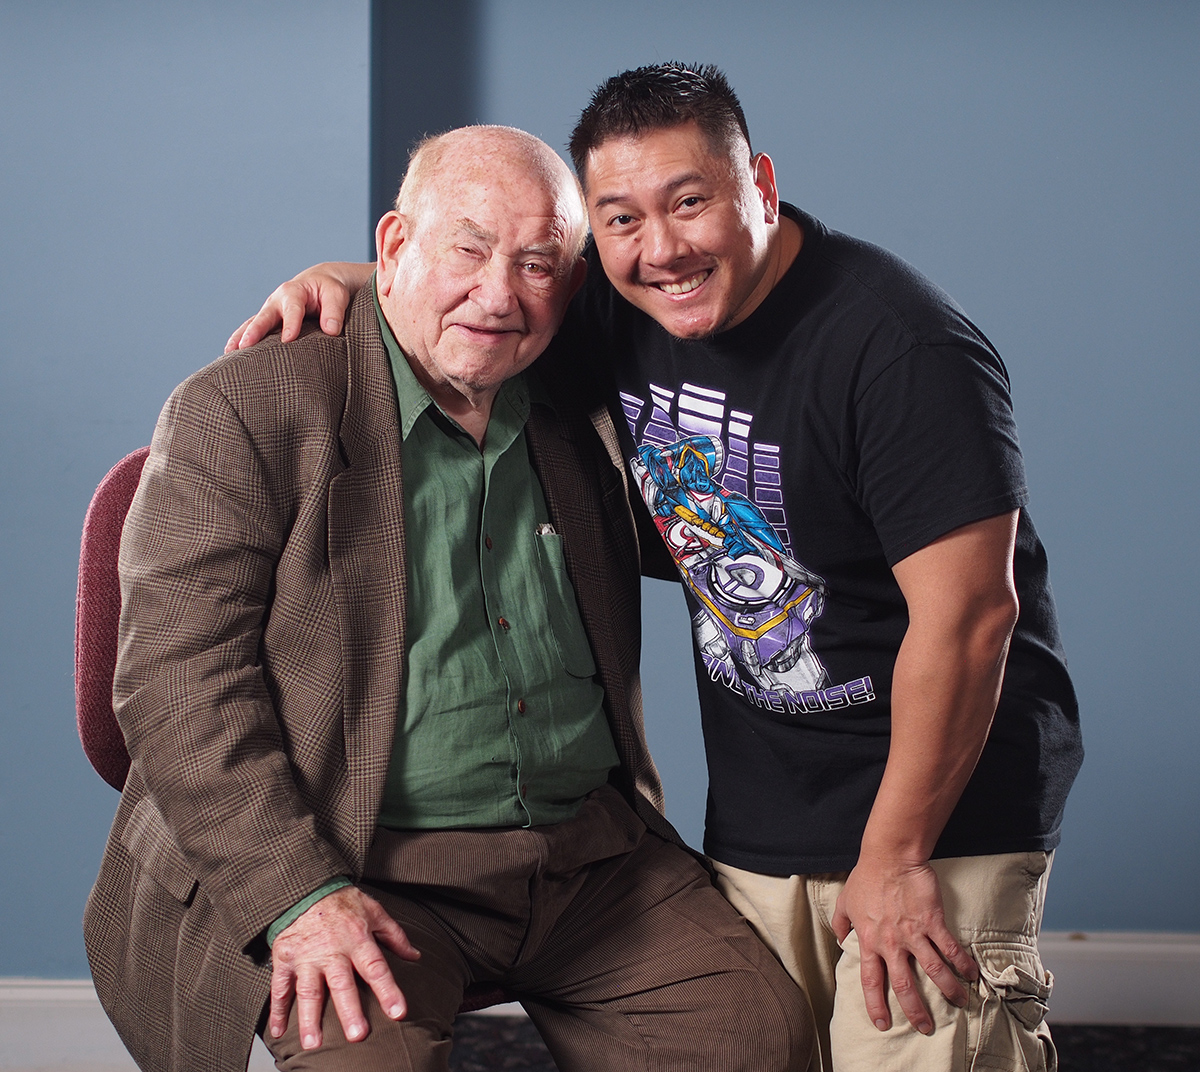 I did manage to snag a quick photo with Ed Asner, though!